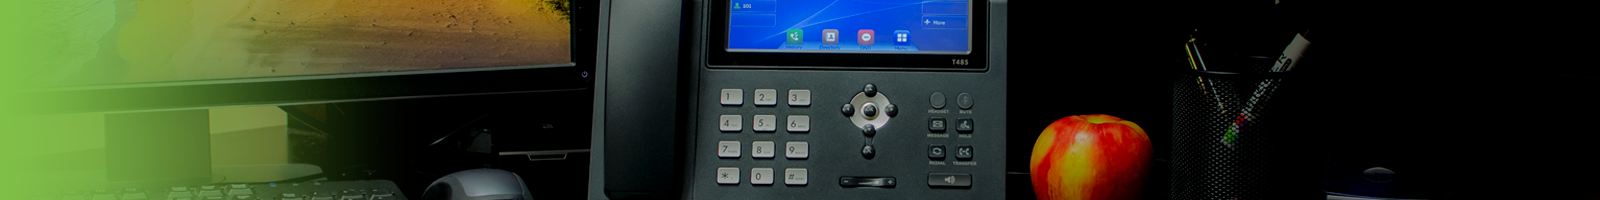 Miller VoIP Phone Systems